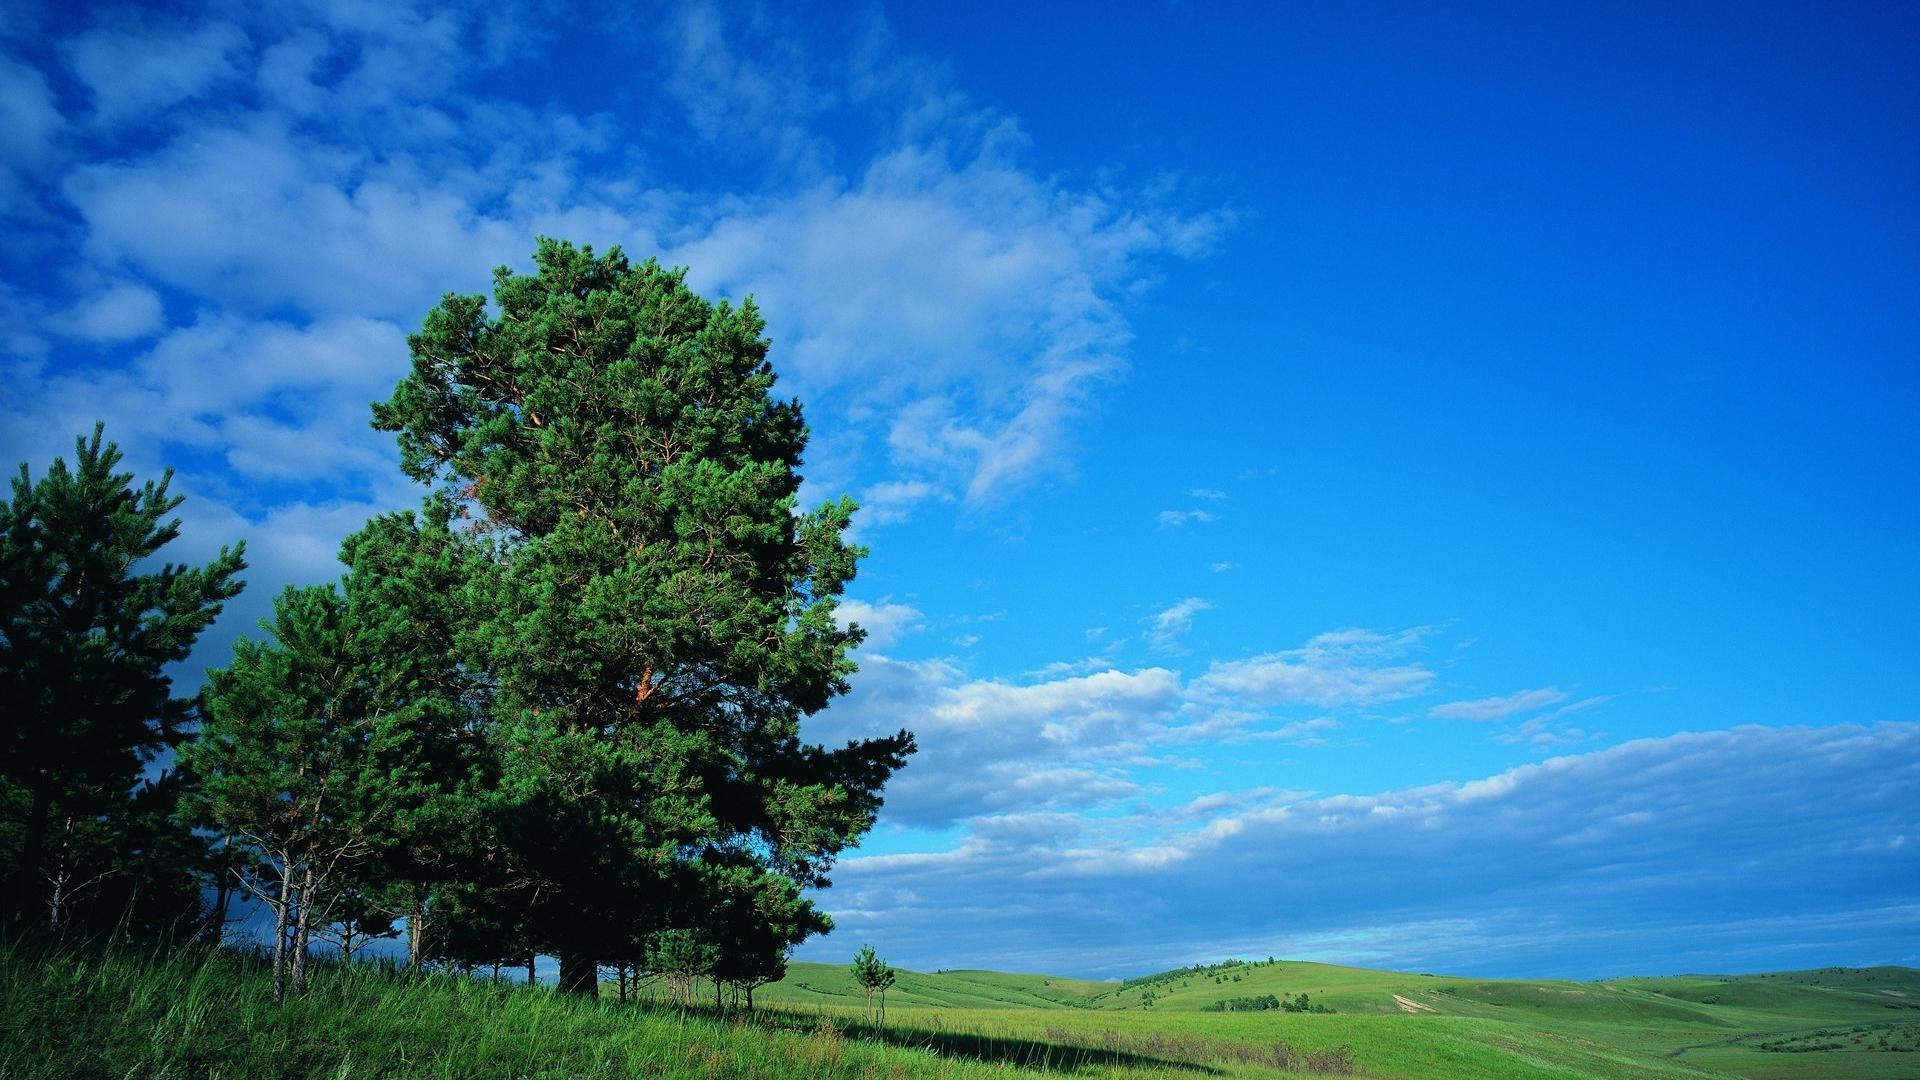 Green tree on background of blue sky